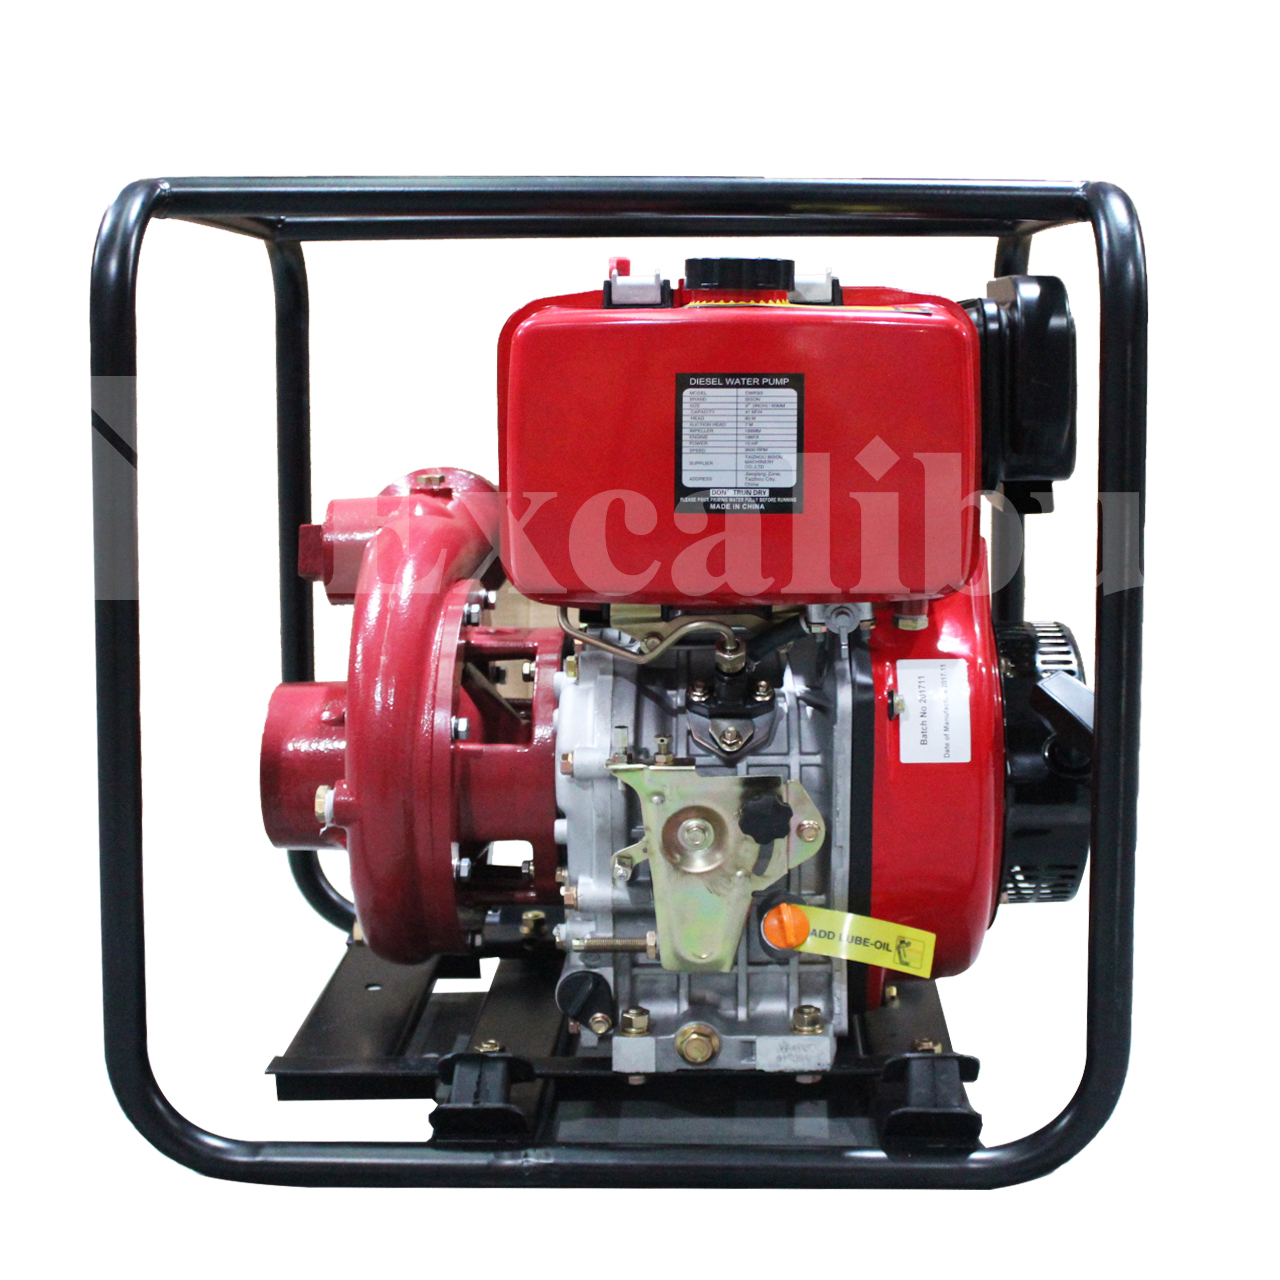 3″ High Pressure Cast Iron Fire Fighting Diesel Water Pump SHP80DI(E)